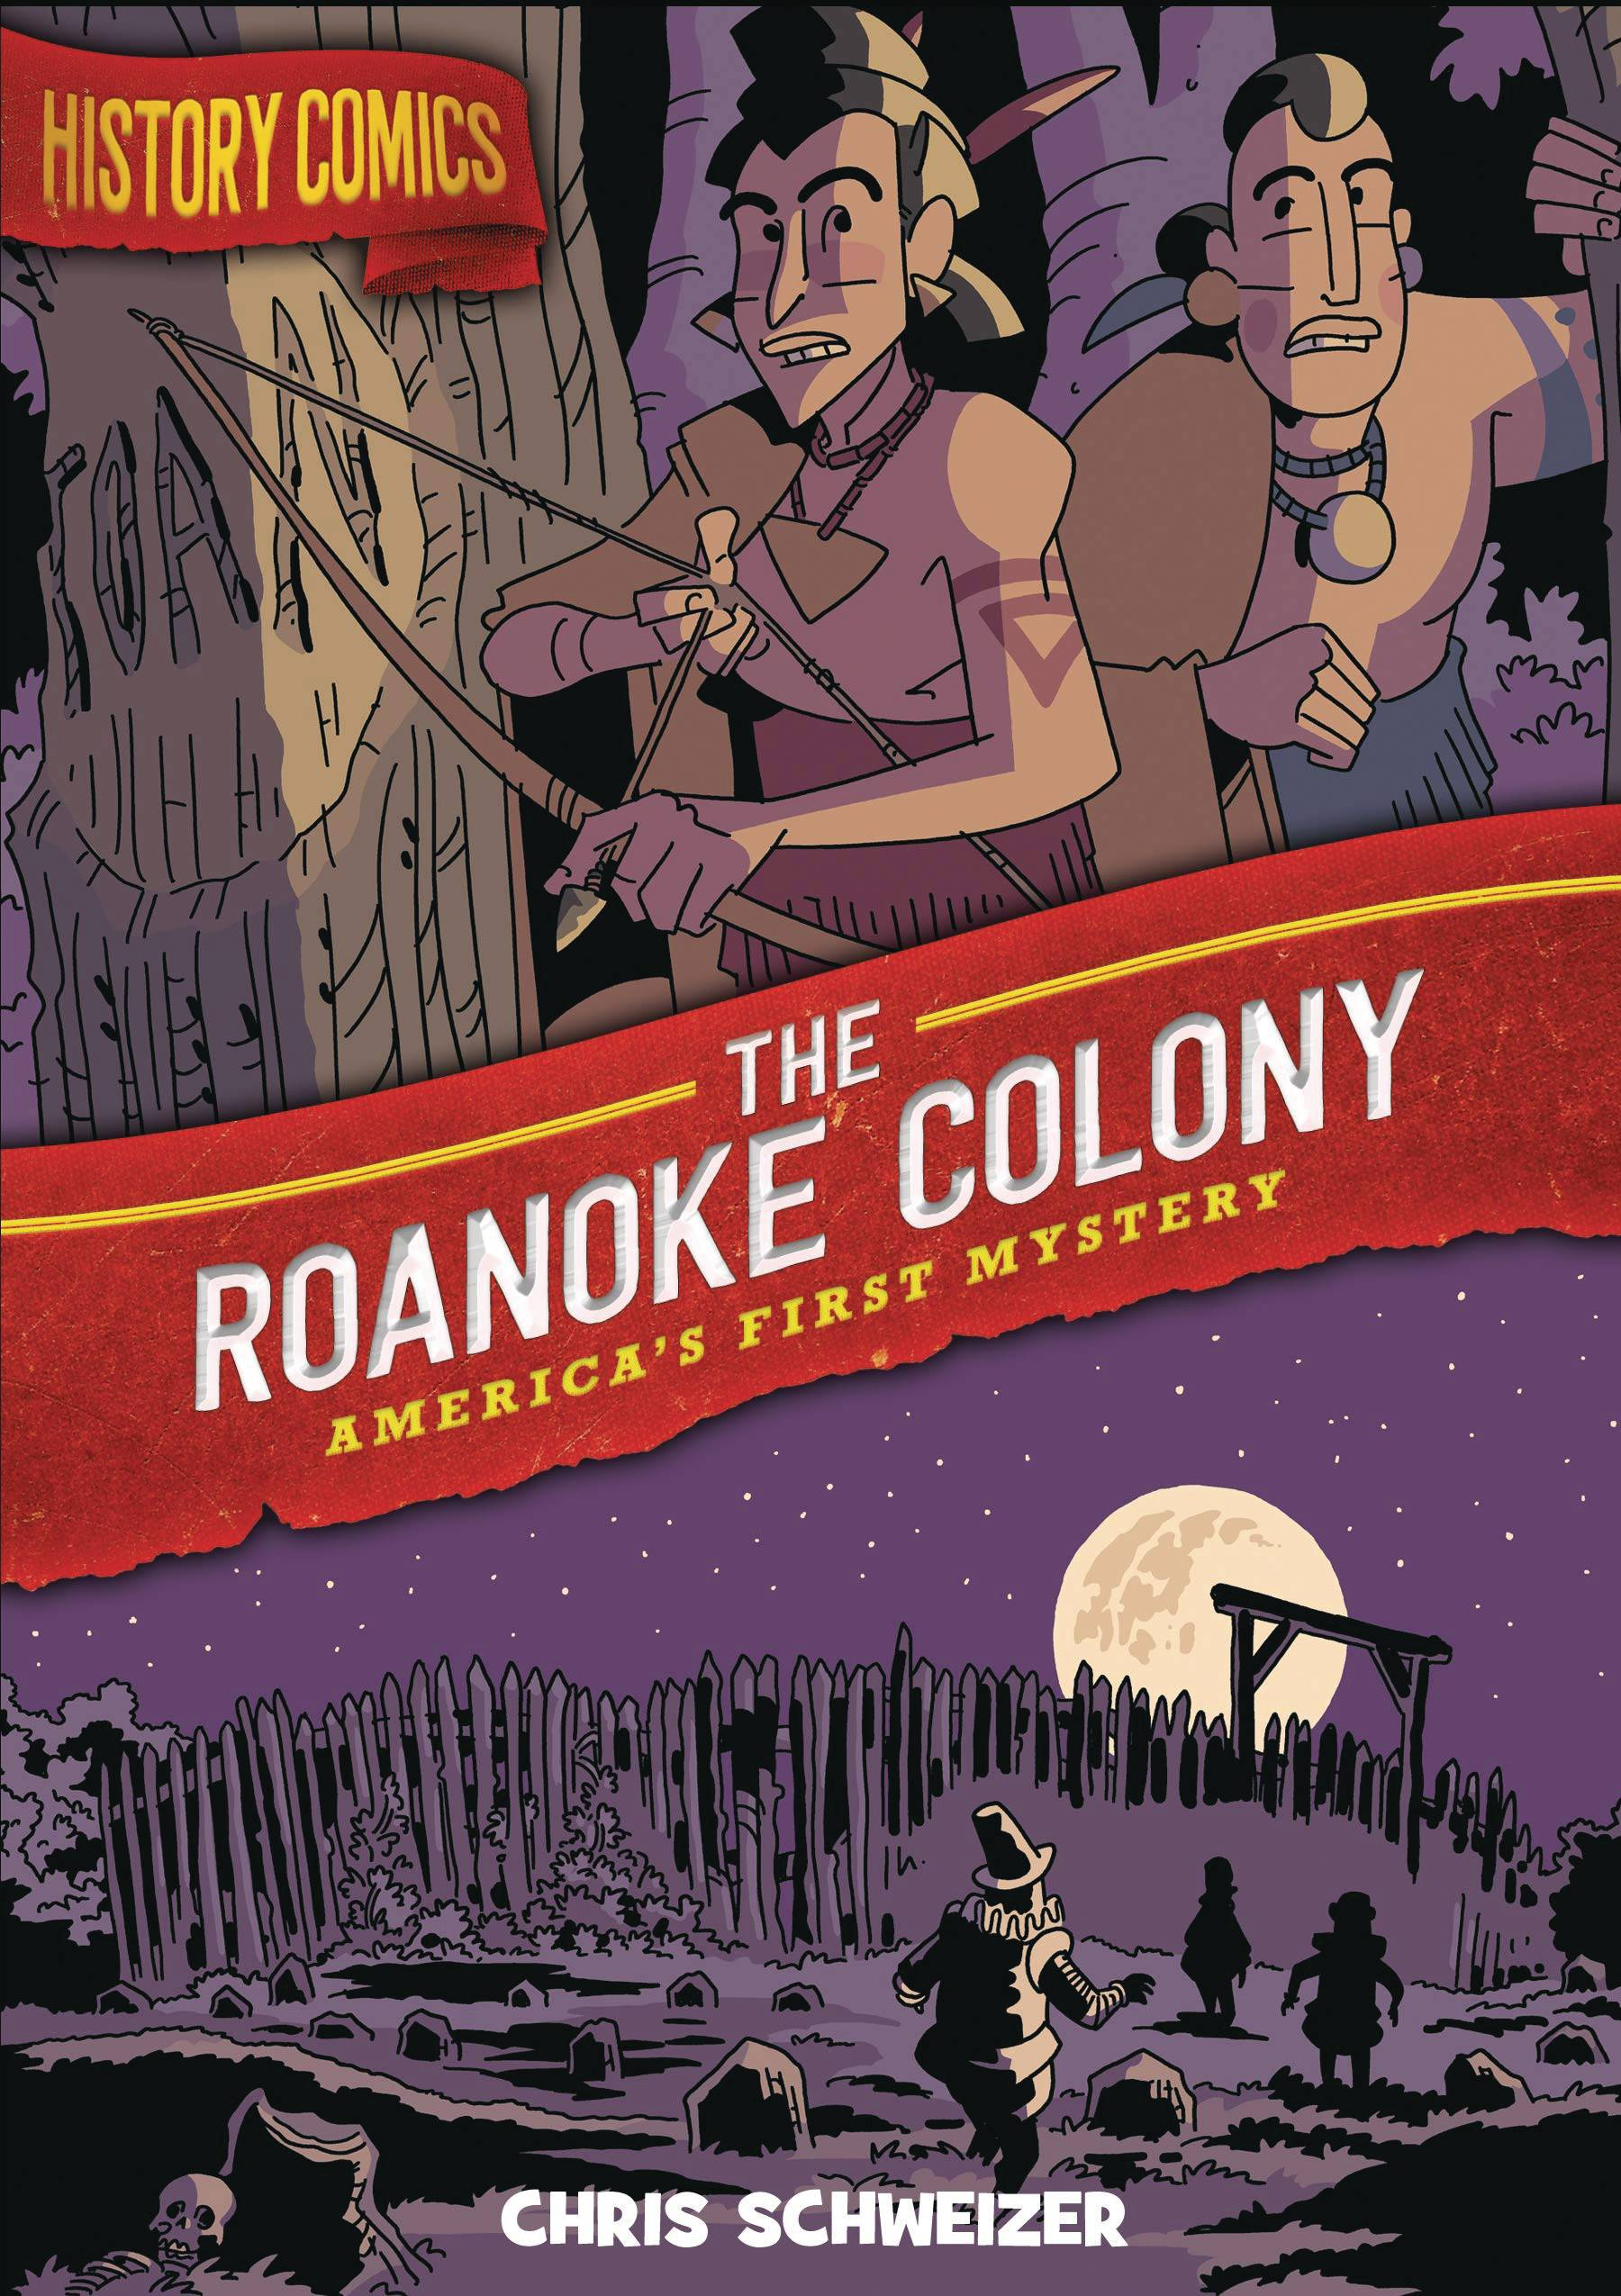 HISTORY COMICS GN ROANOKE COLONY